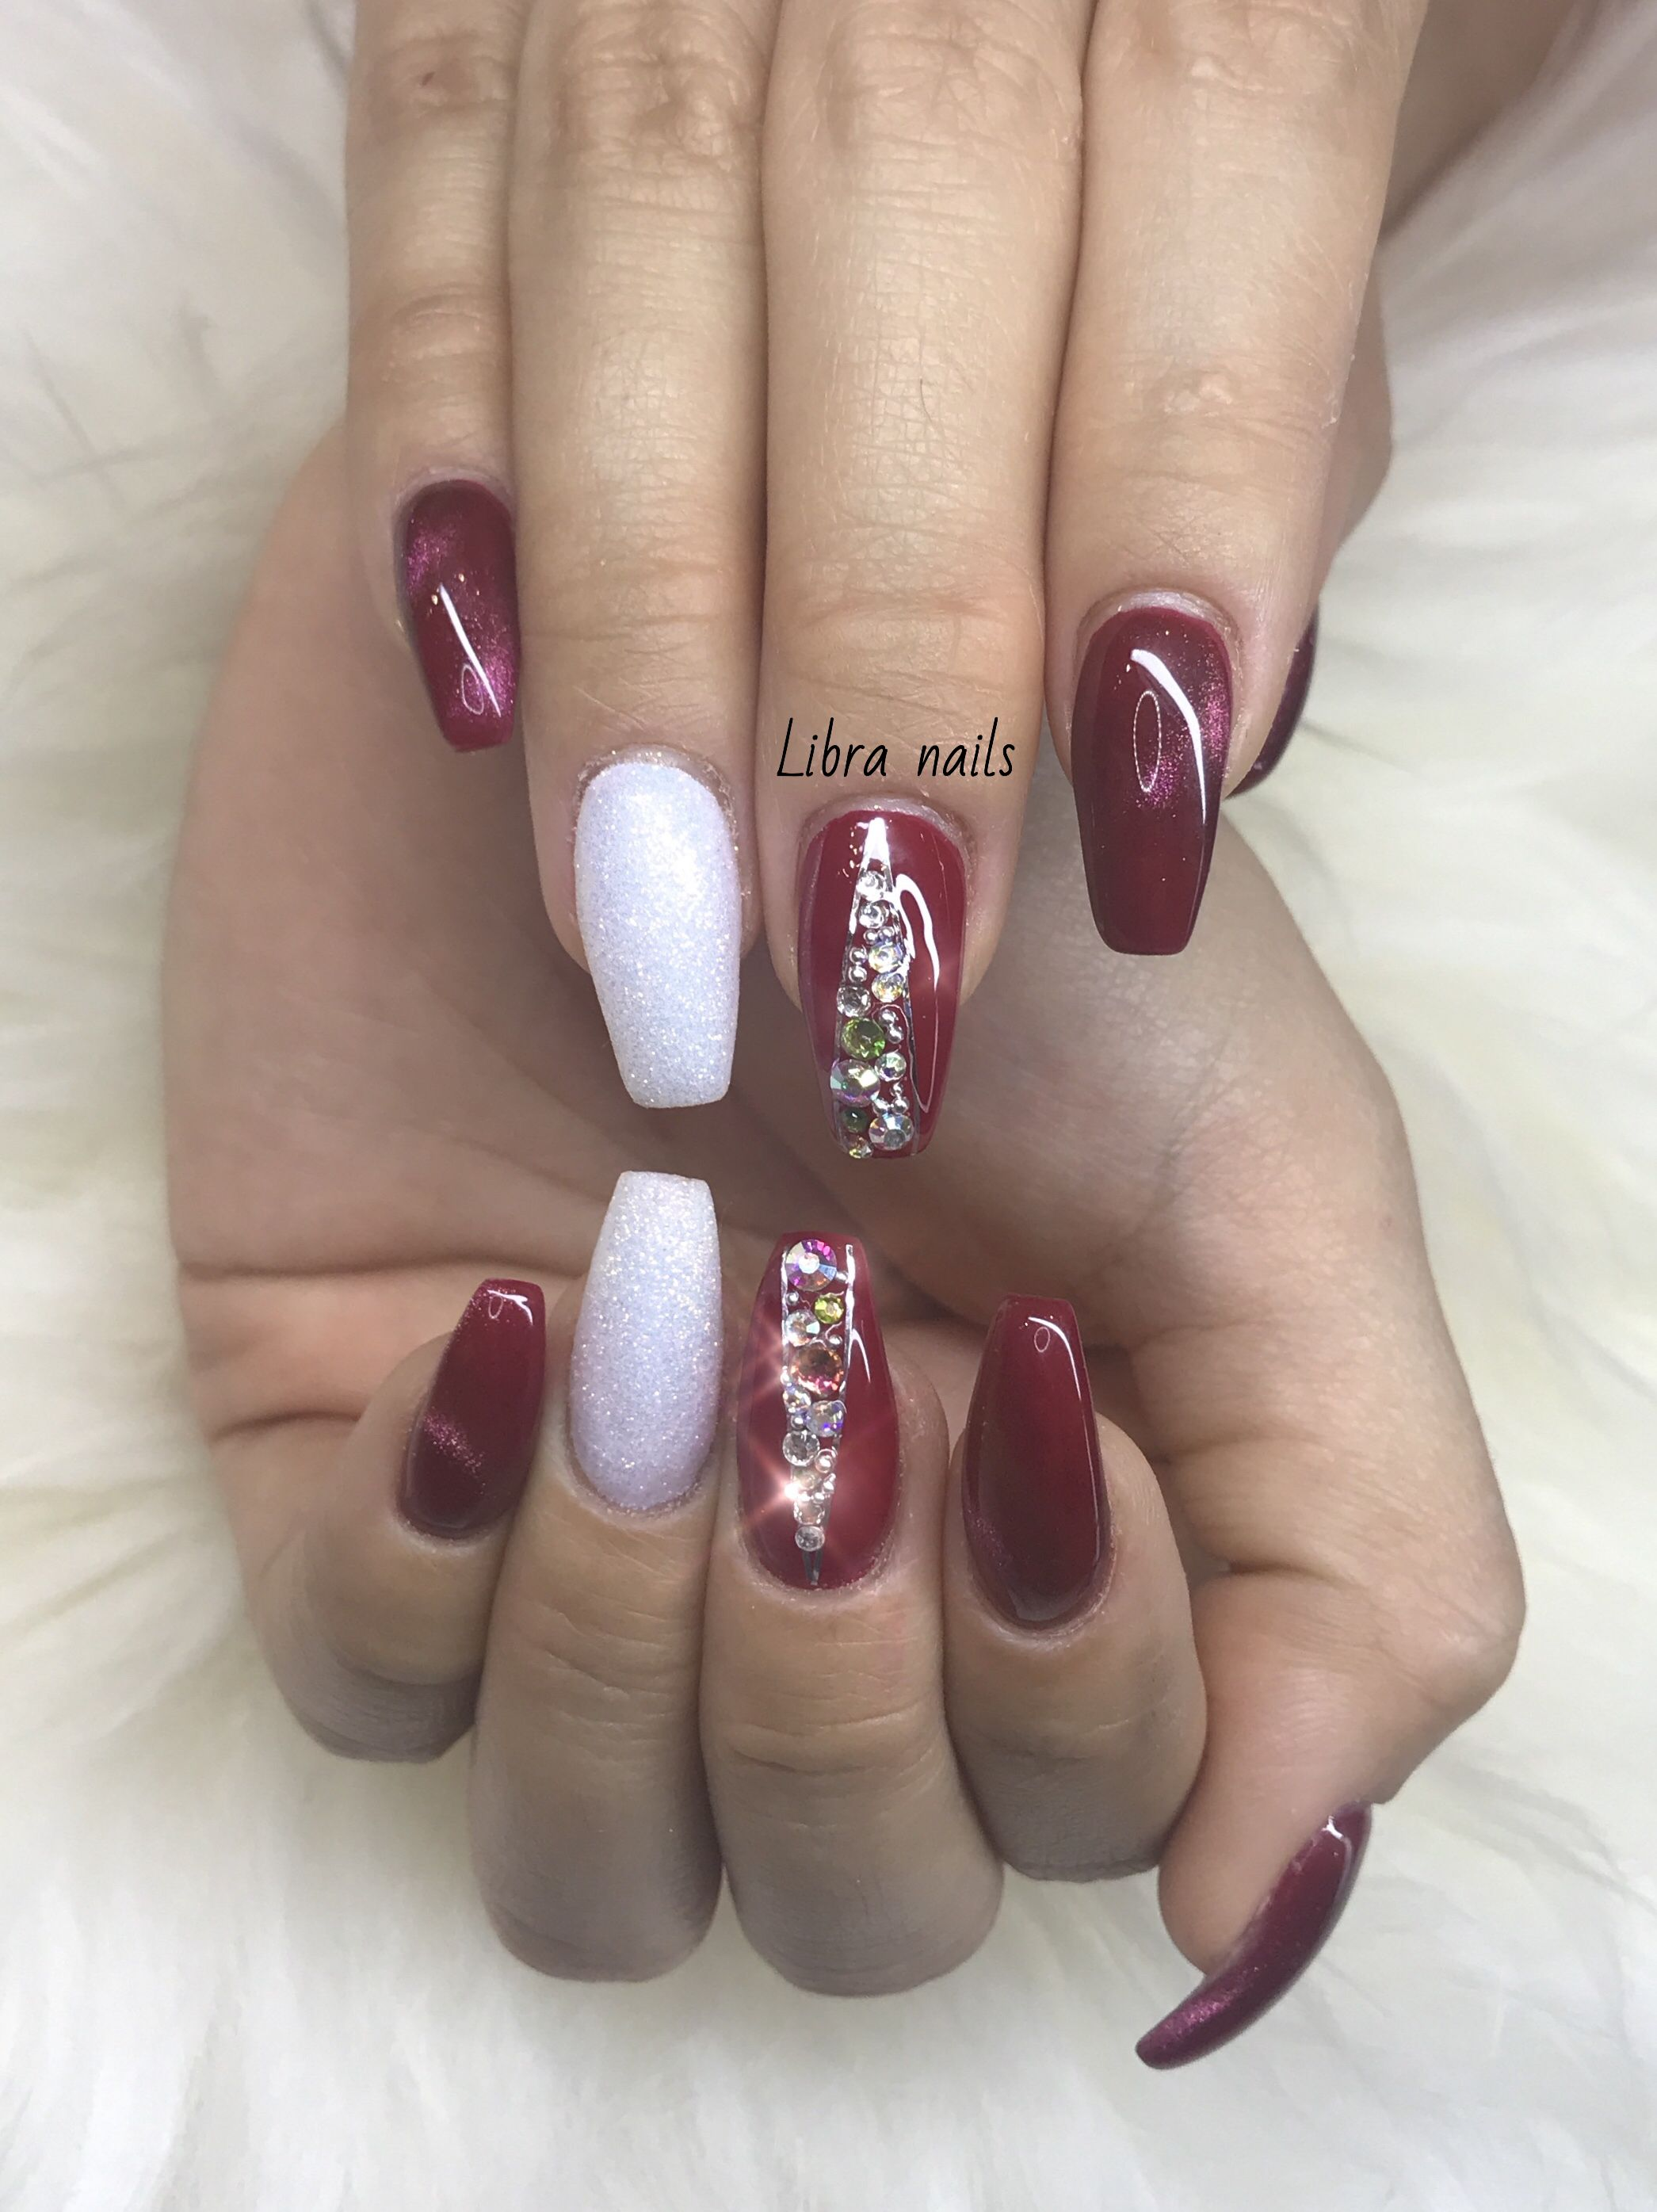 Pin by Melissa Rose on nail designs | Pinterest | Wine nails, Red ...